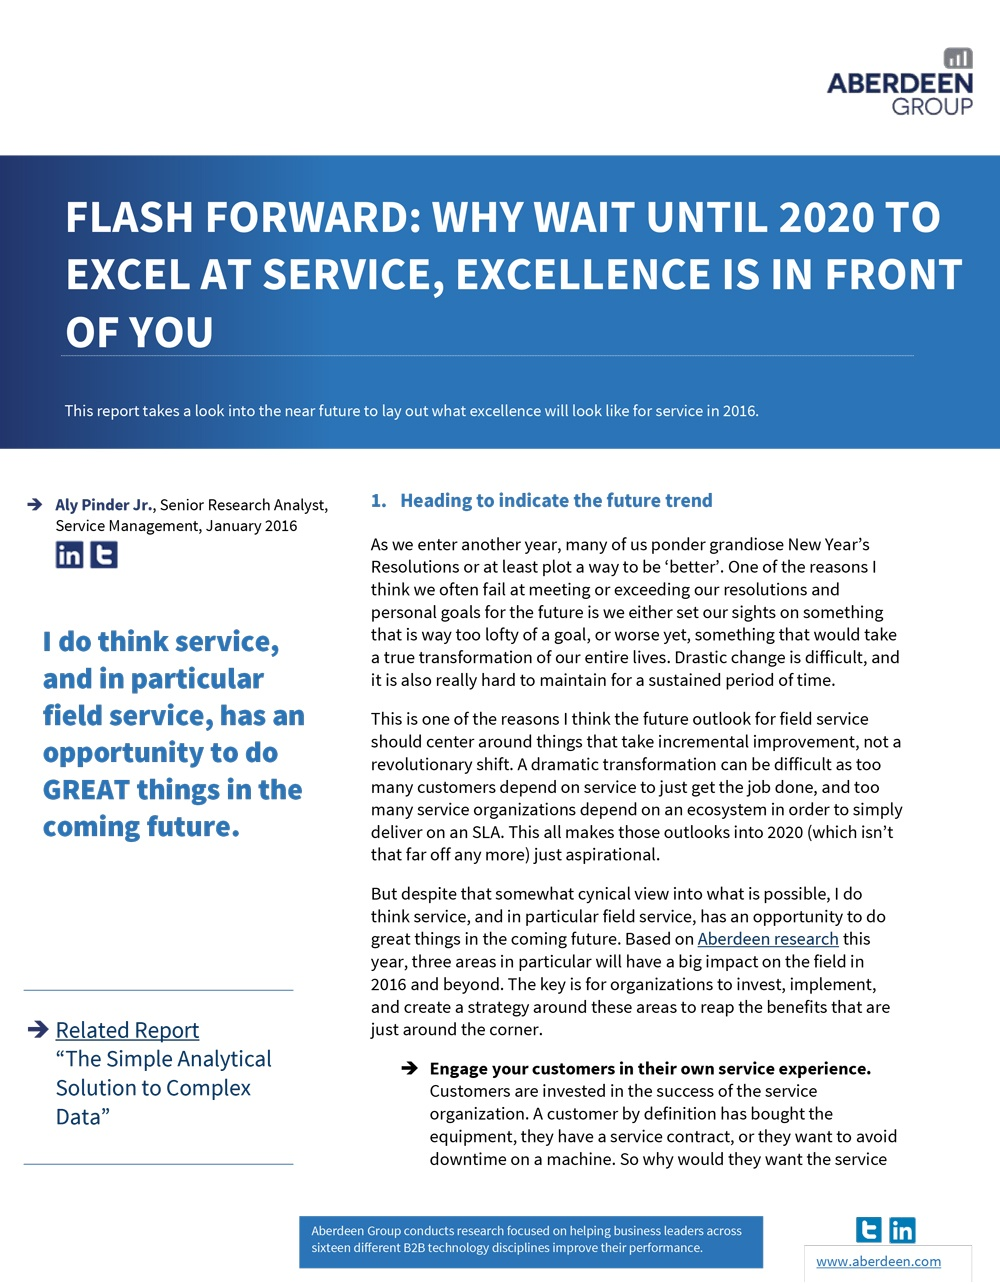 Why Wait Until 2020 to Excel at Service, Excellence is in Front of You